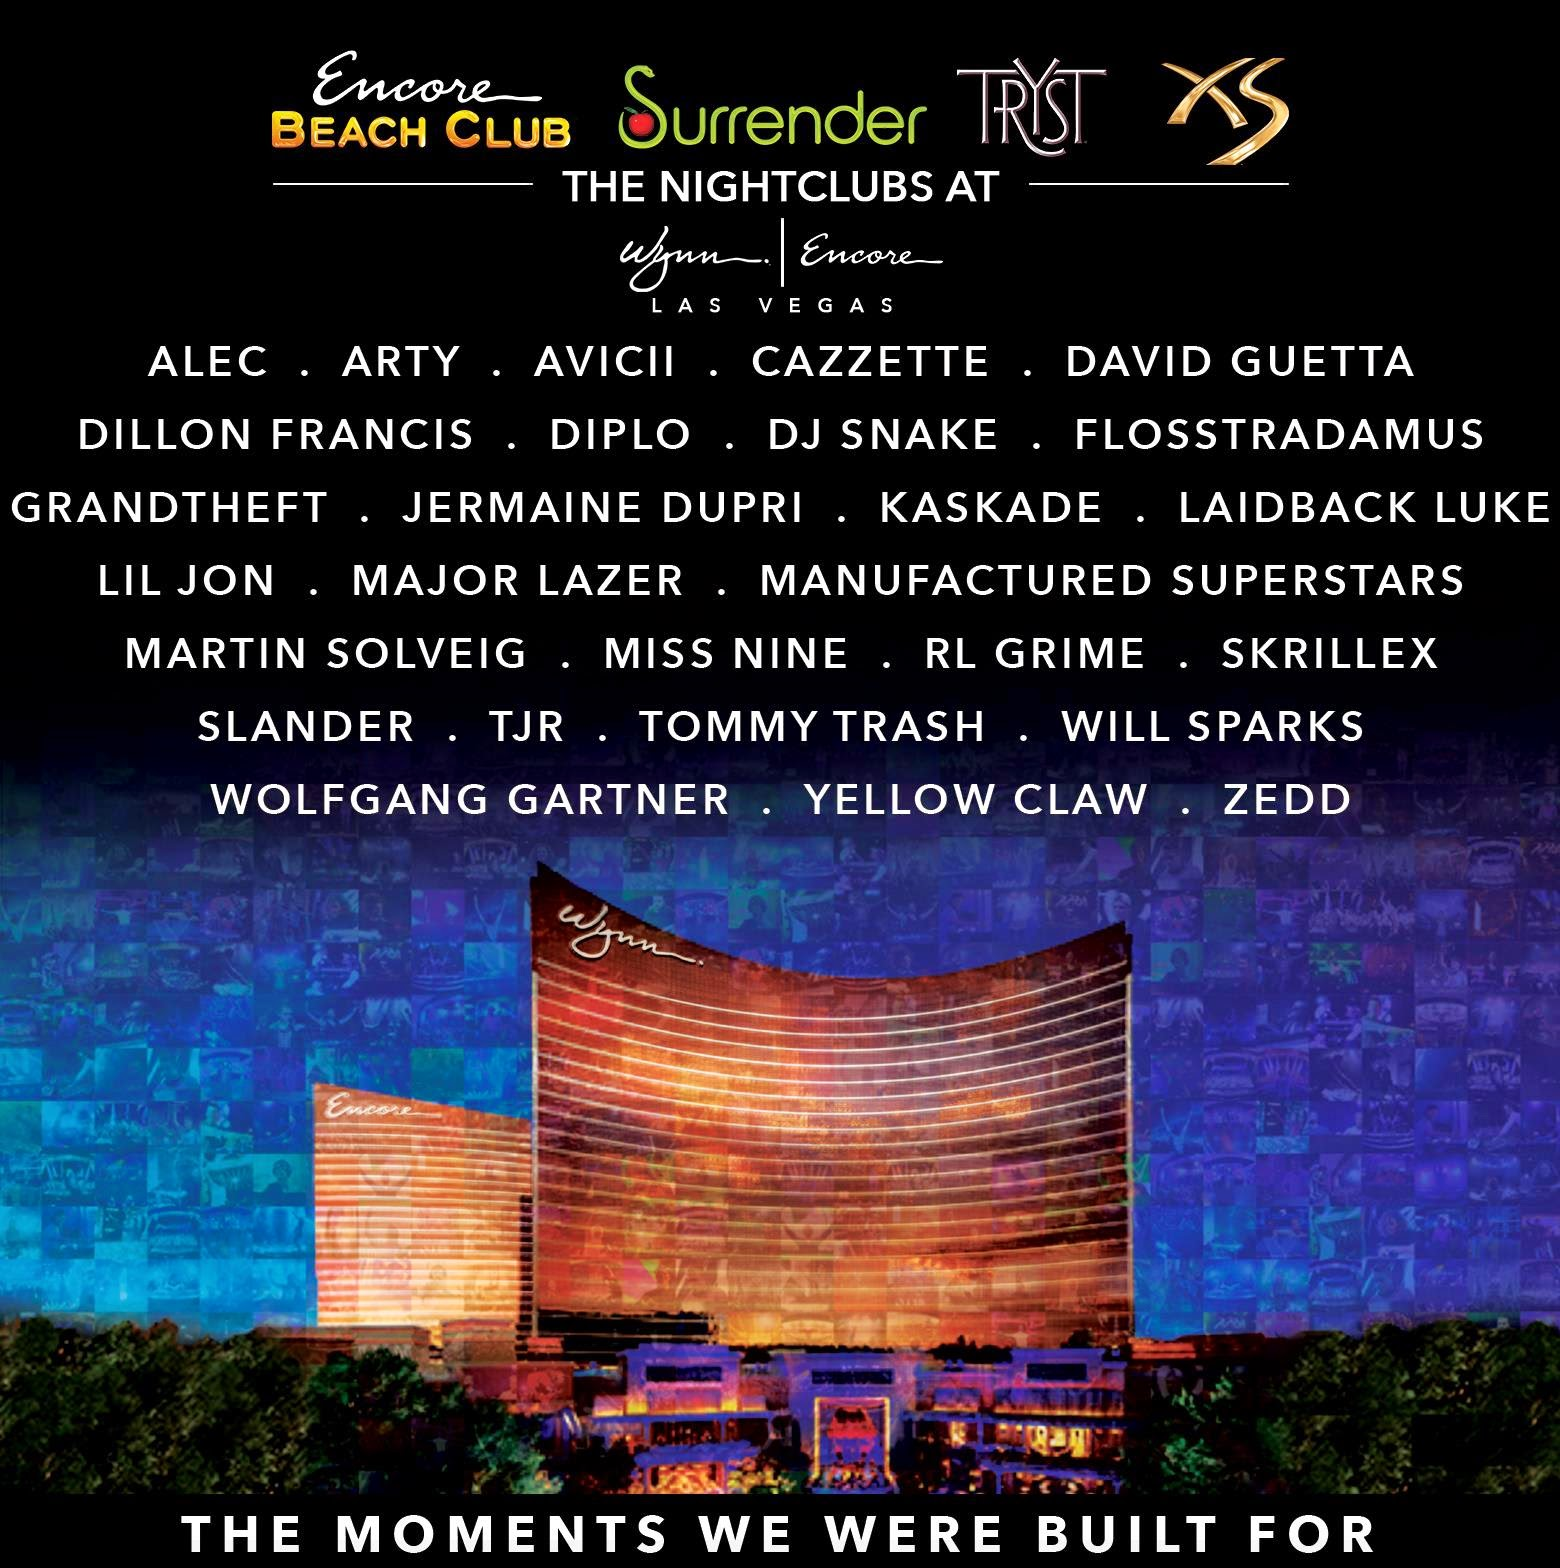 XS, Encore Beach Club, Surrender, & Tryst 2015 Exclusive Residency ...